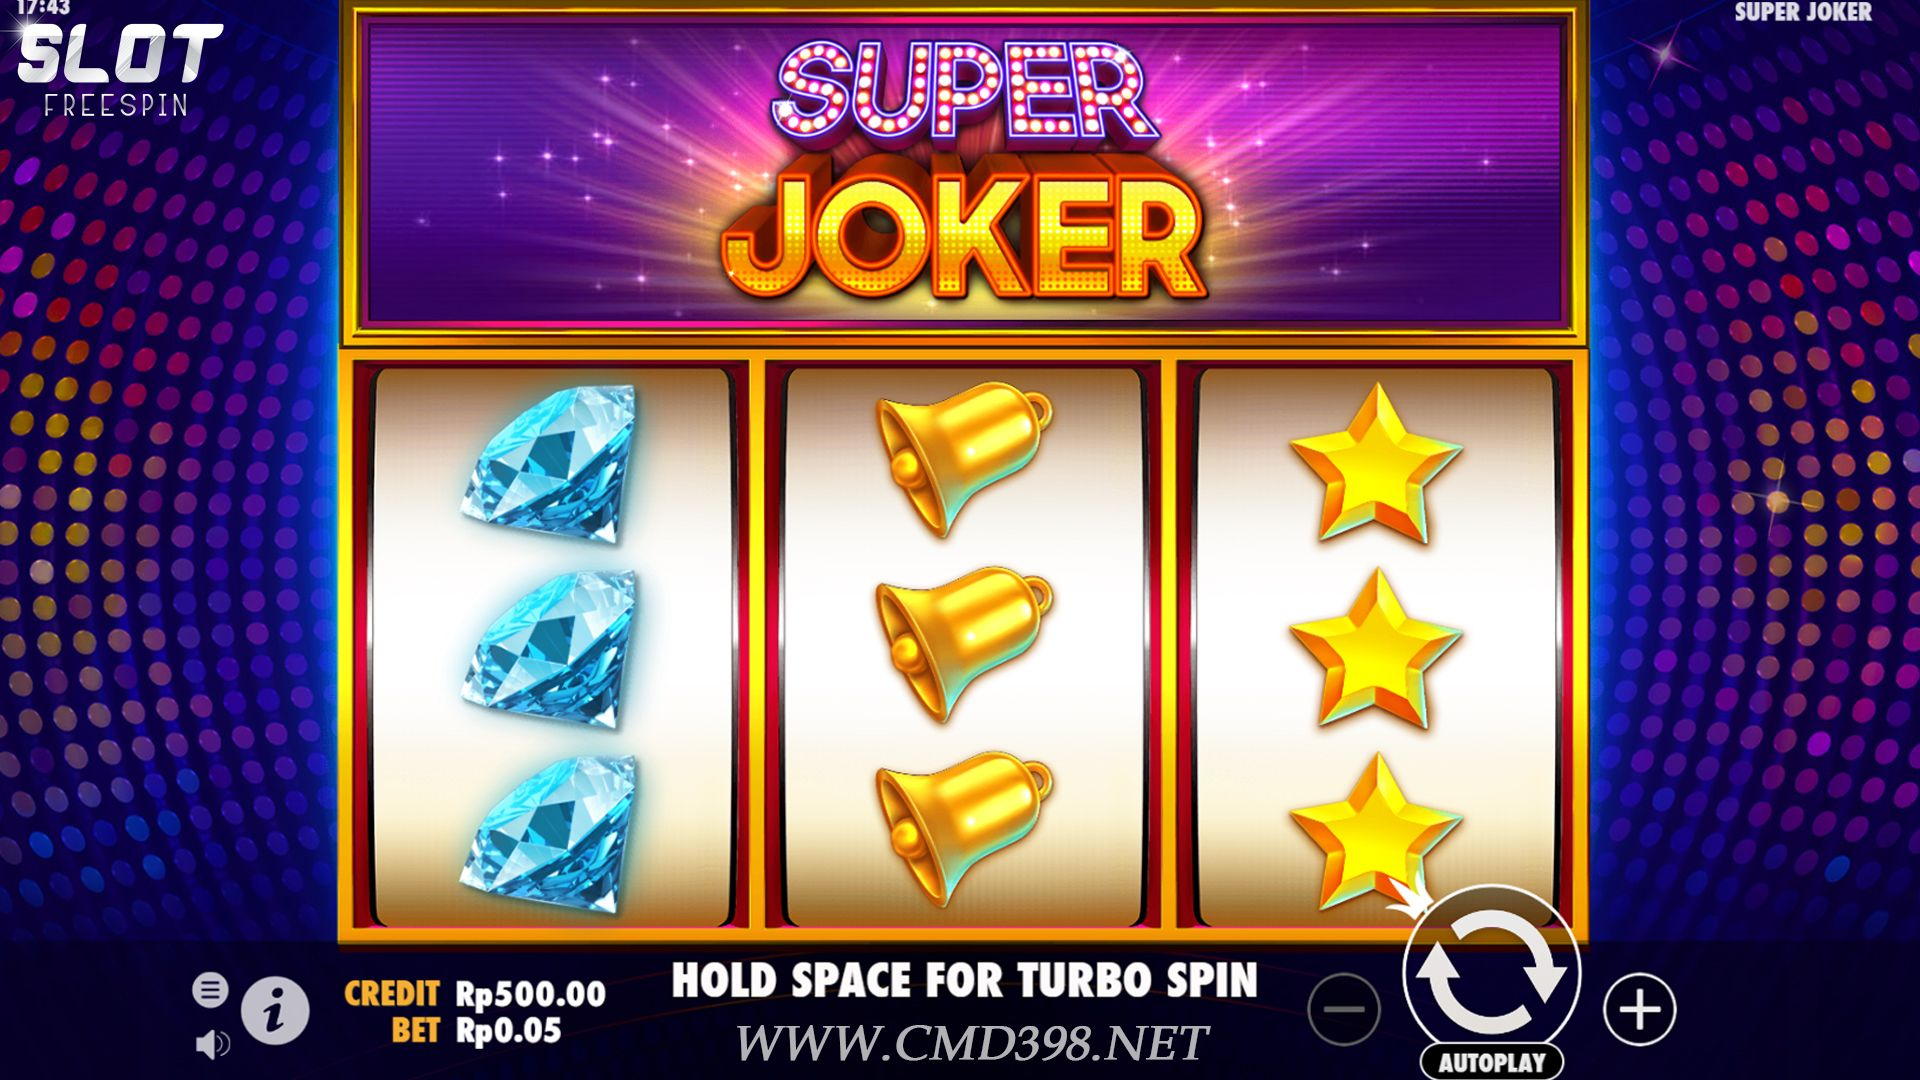 SUPER JOKER Pragmatic Play Cara Main Slot Mesin Mudah